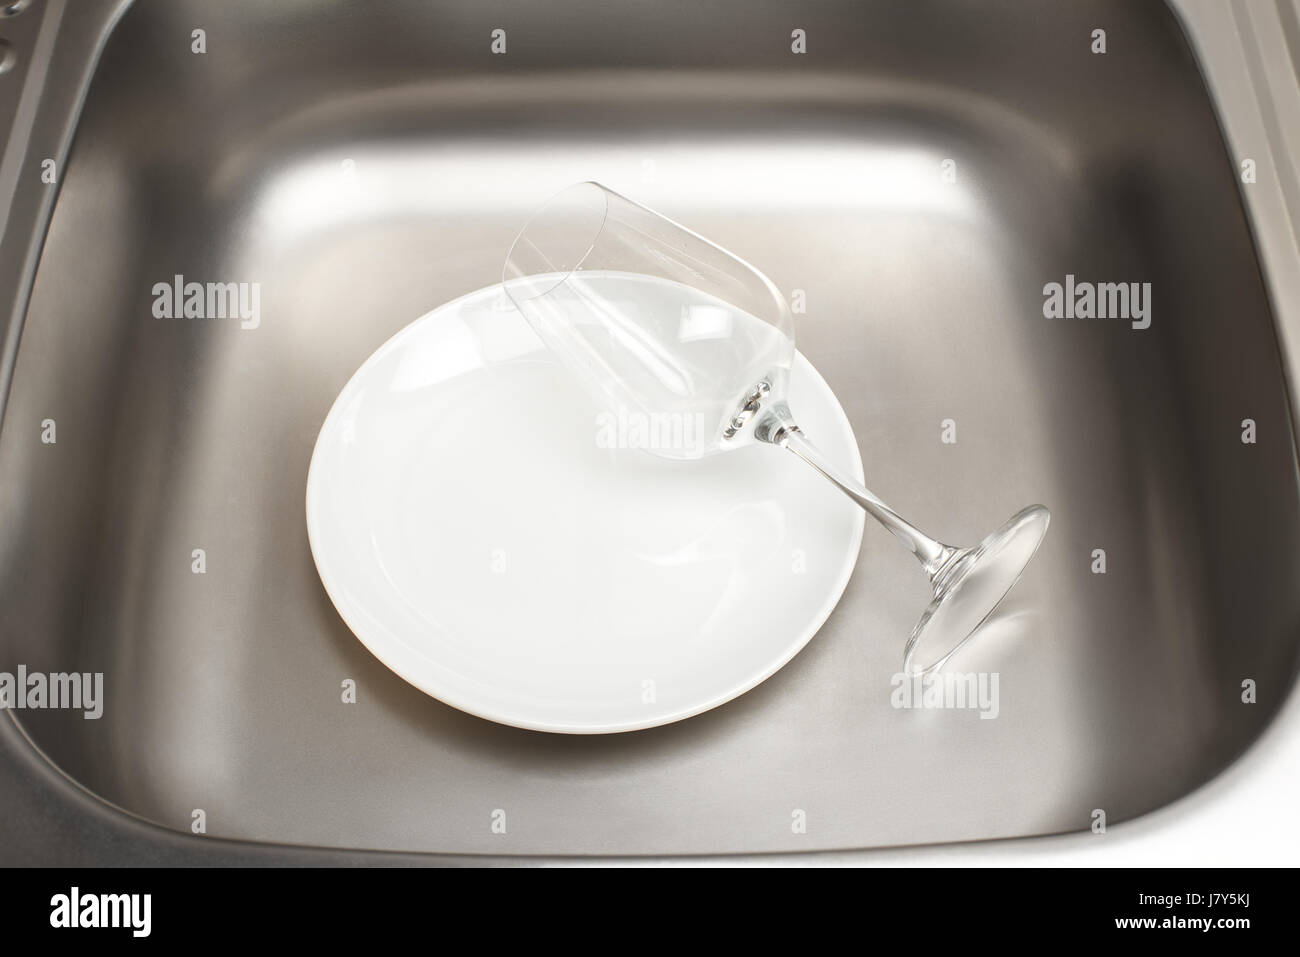 Close up kitchen sink with clean white plate and wine glass Stock ...